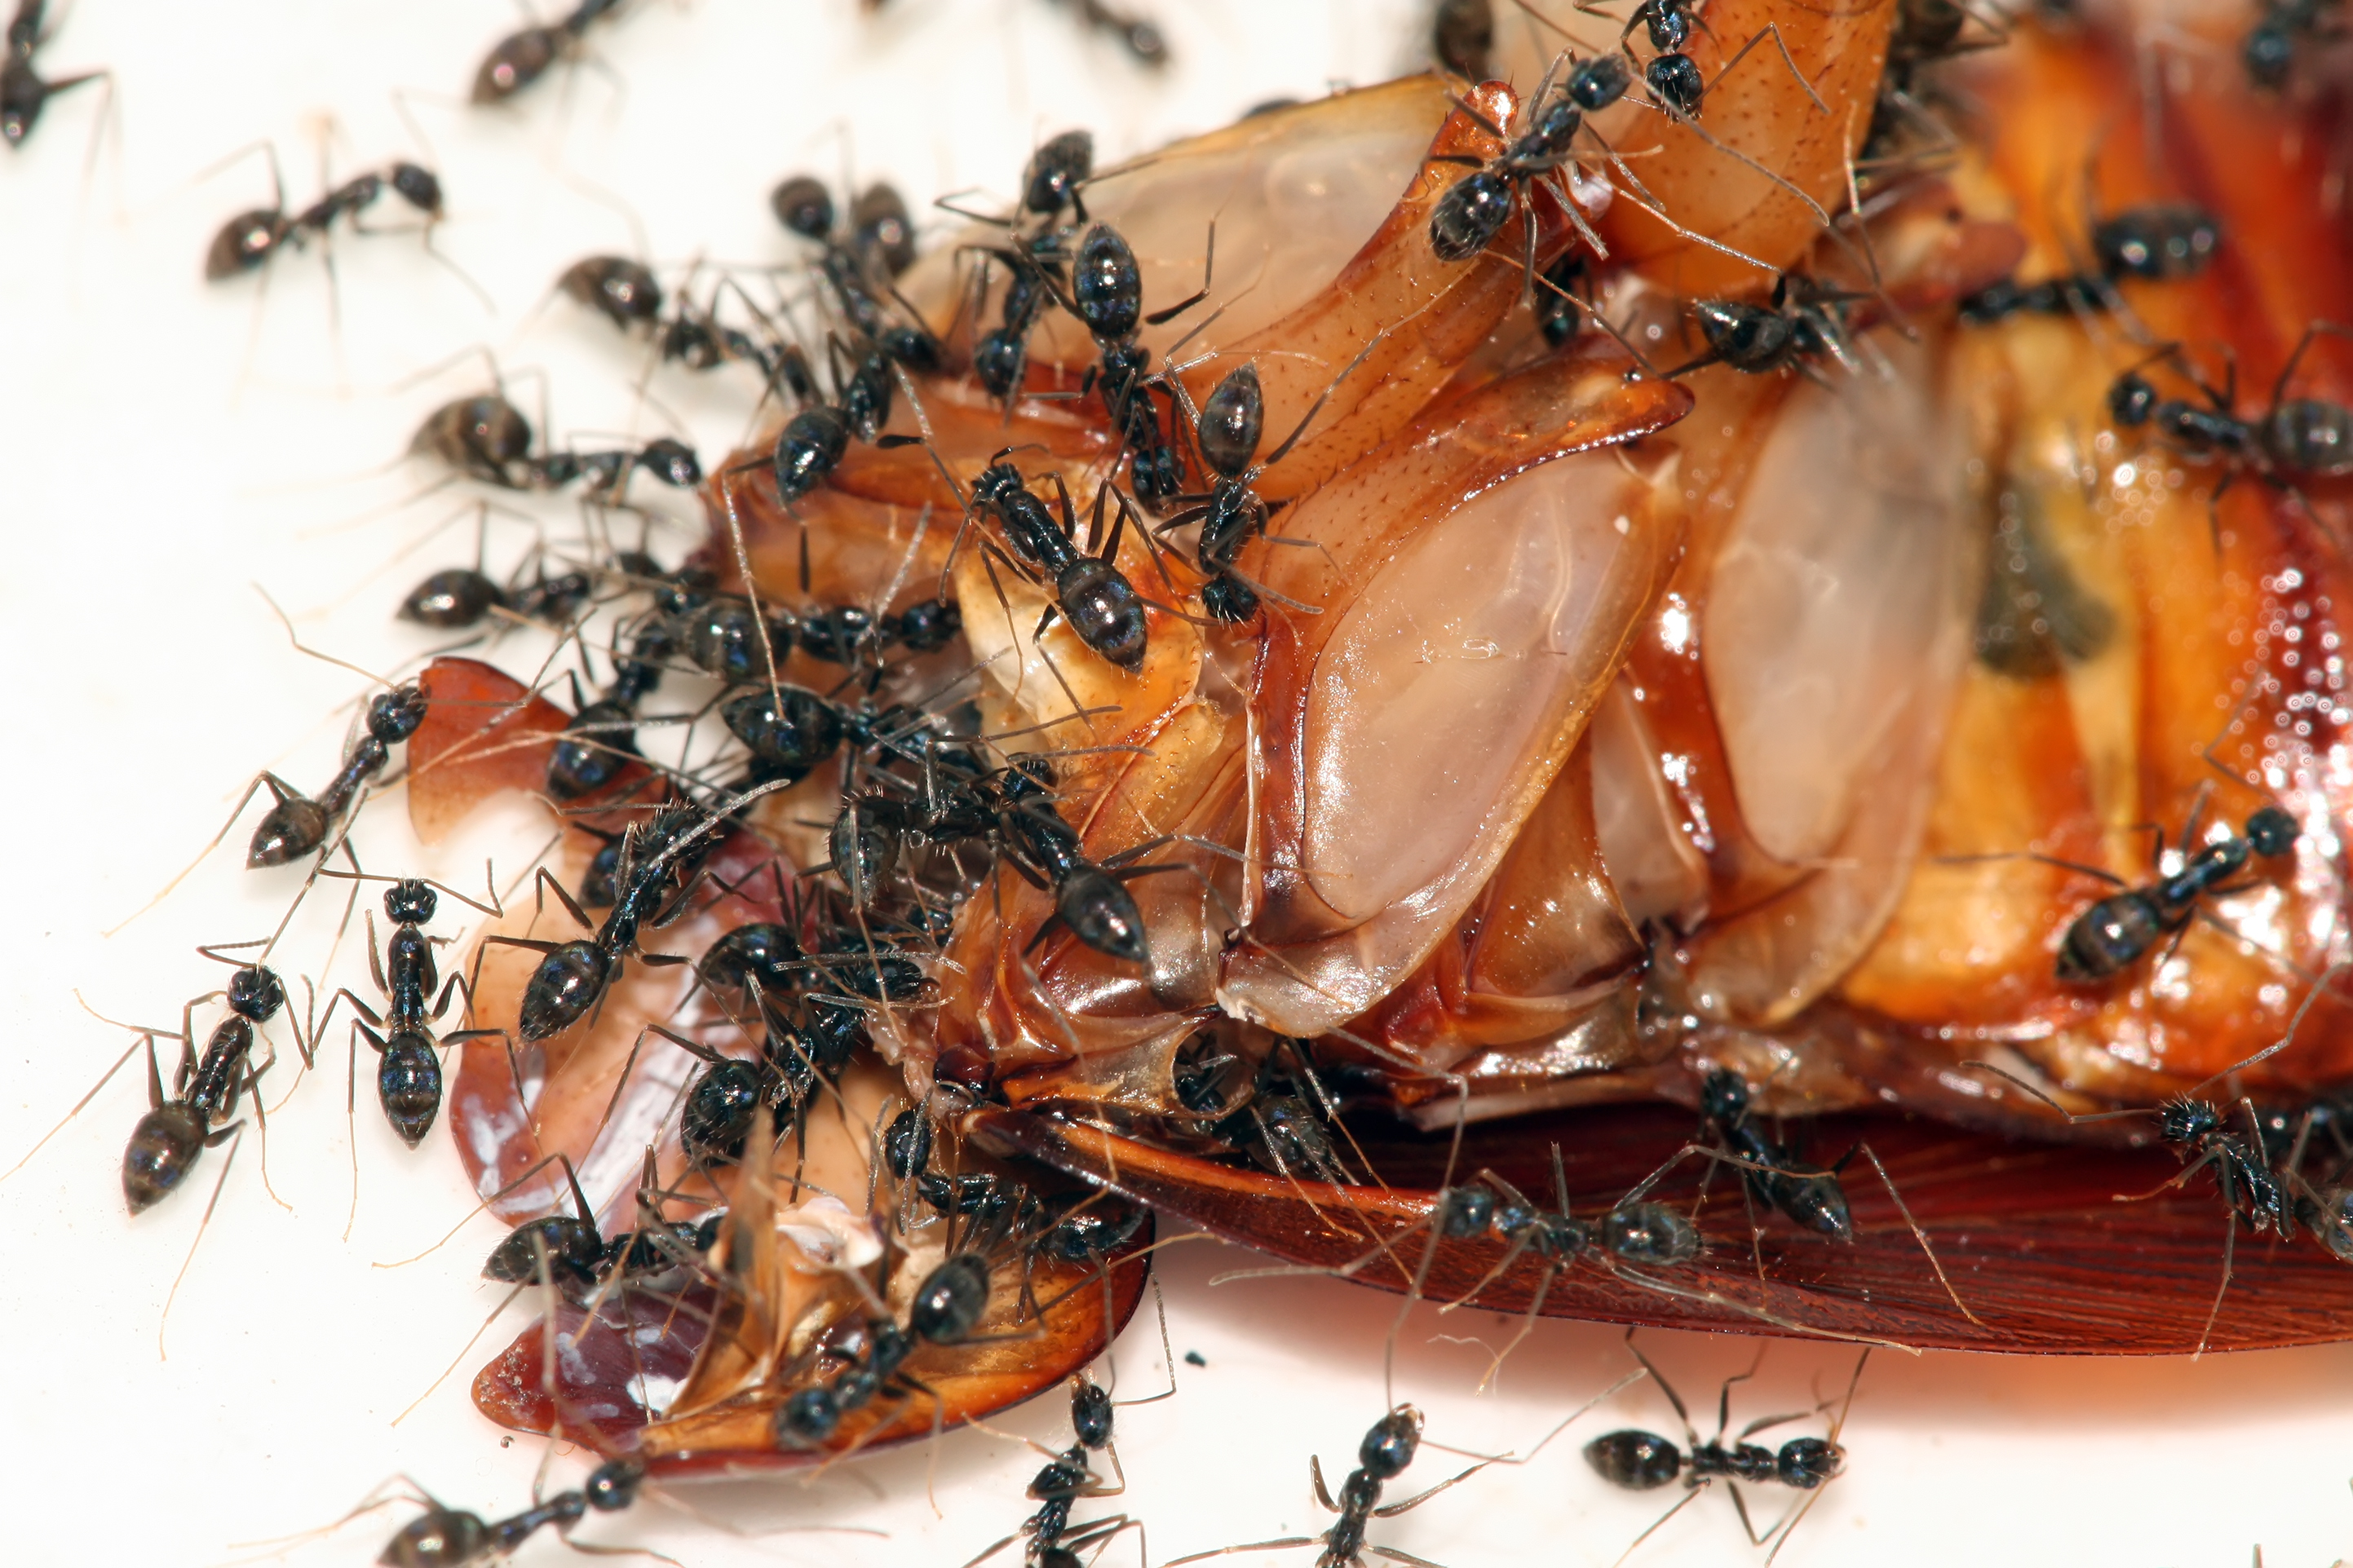 Cockroaches Eating Food